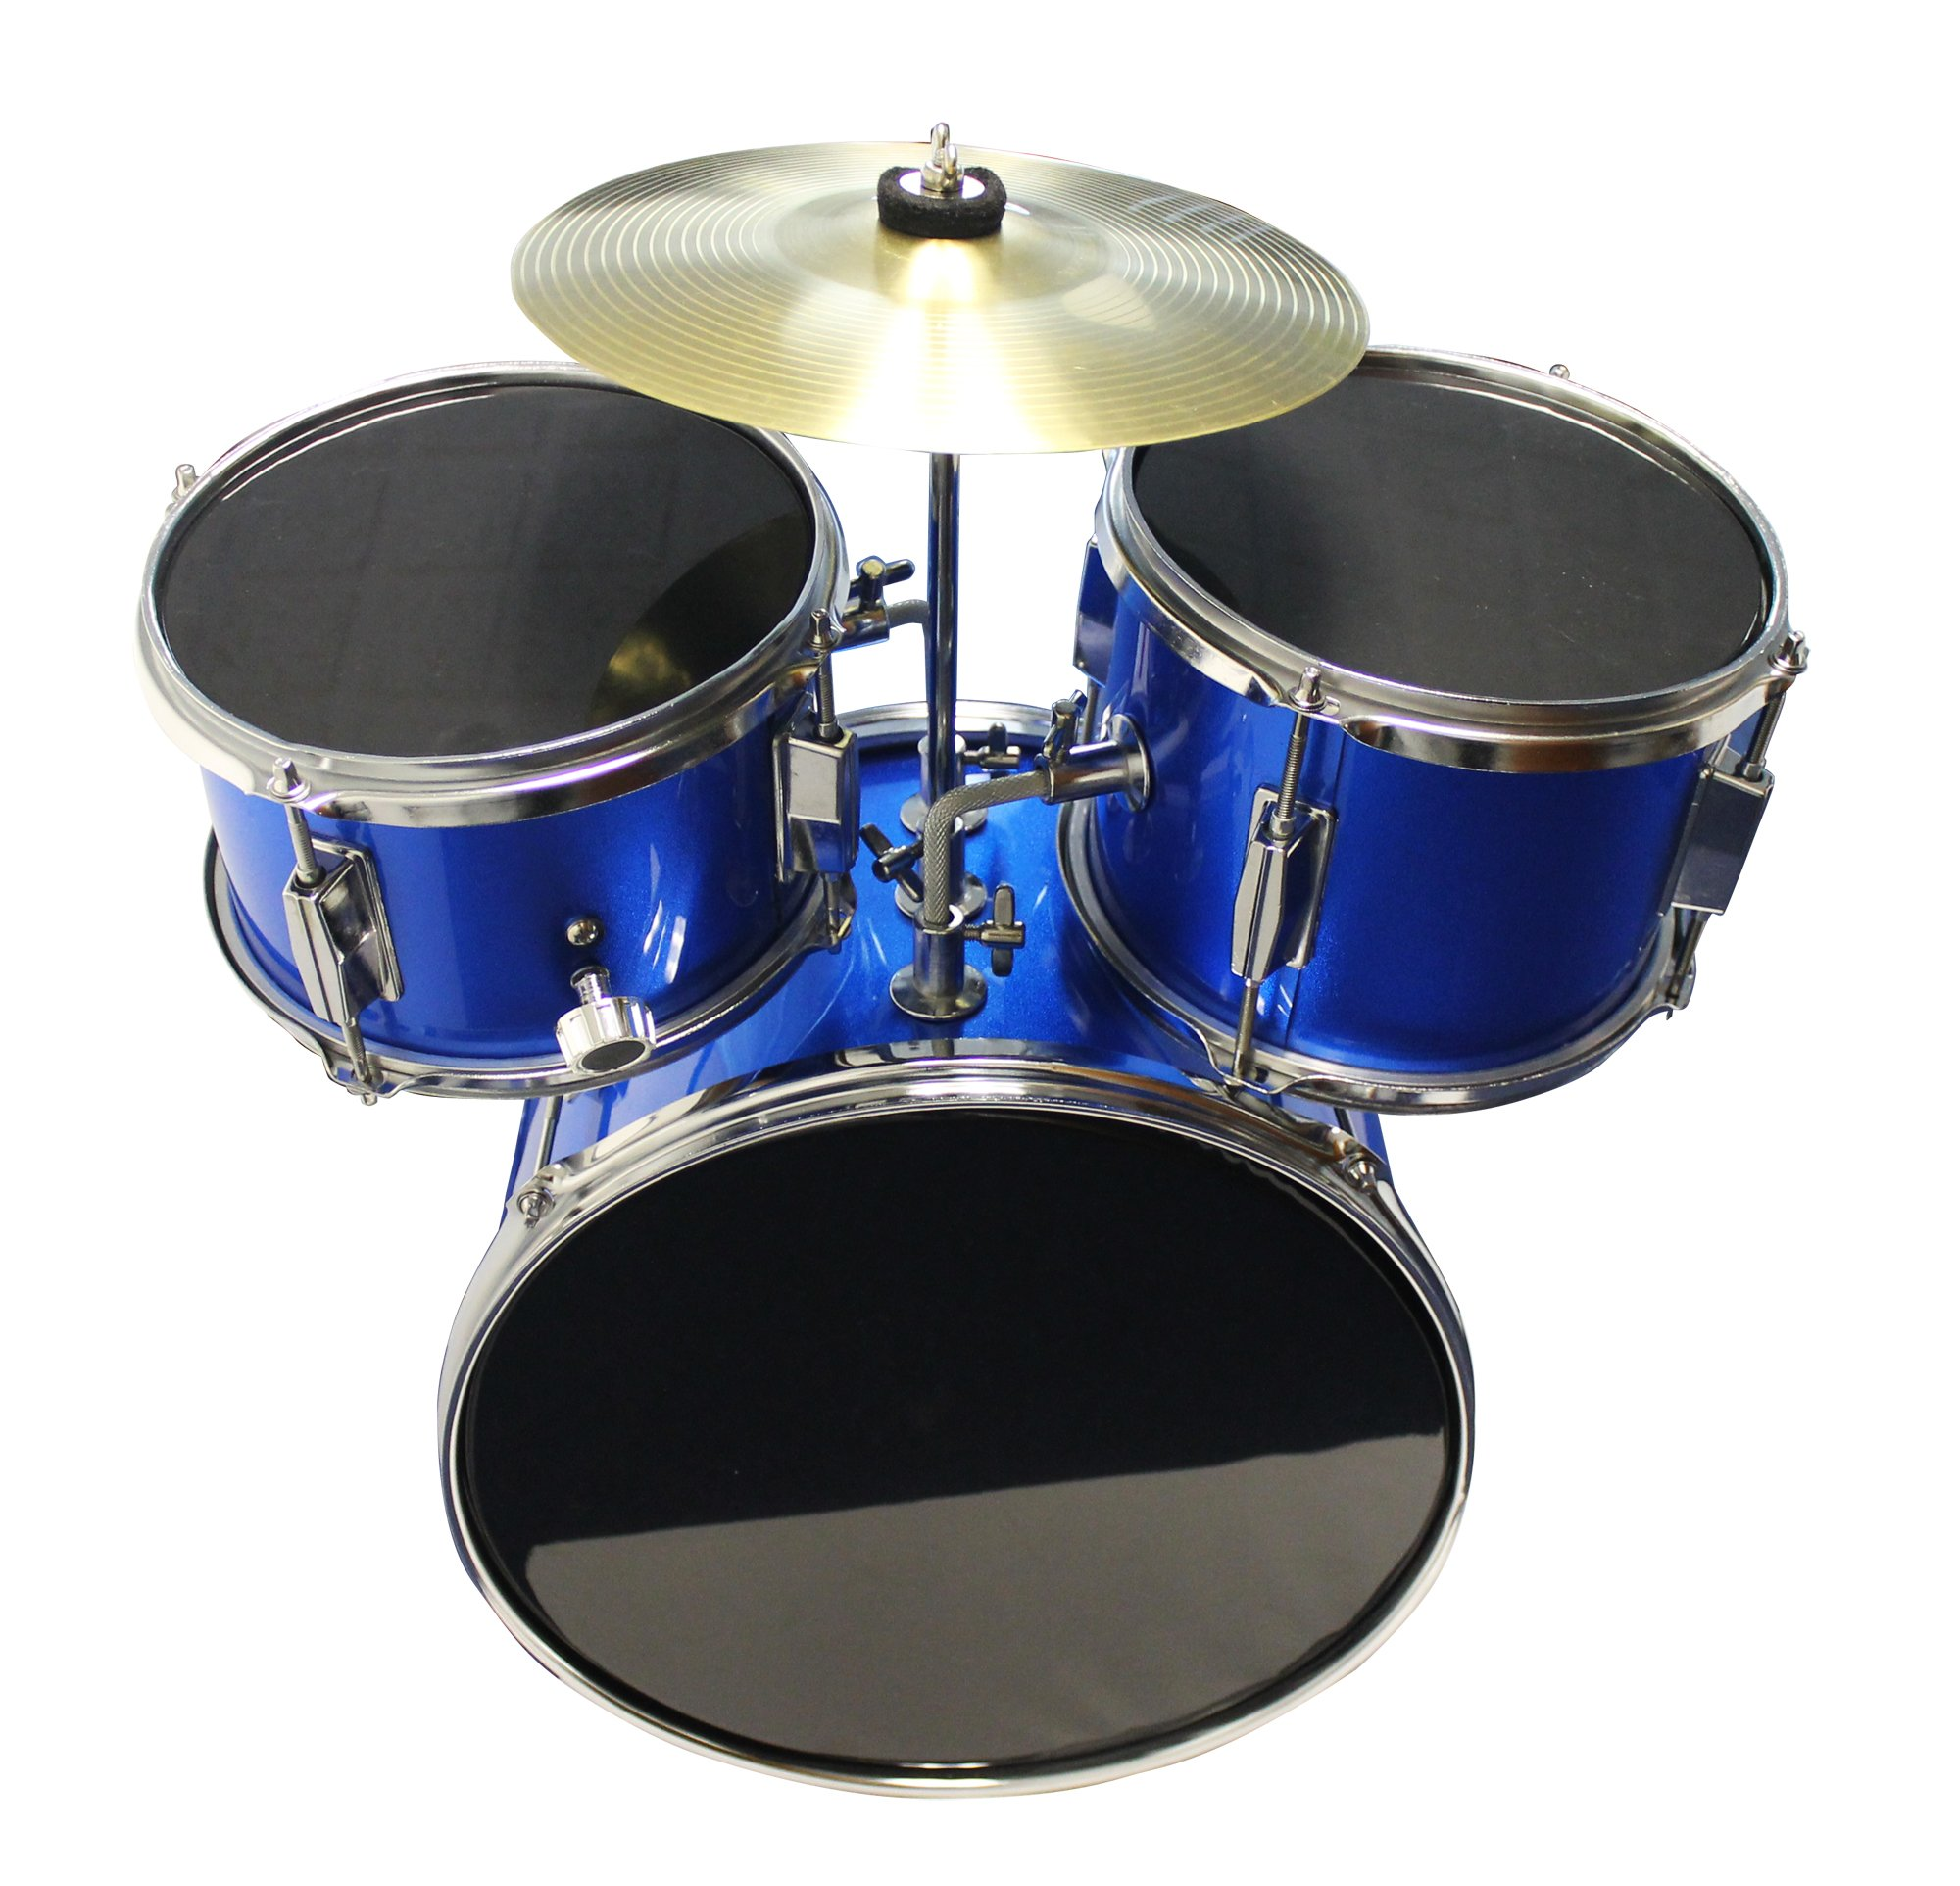 Music Alley Kids 3 Piece Beginners Drum Kit, Blue, inch (DBJK02) by Music Alley (Image #4)